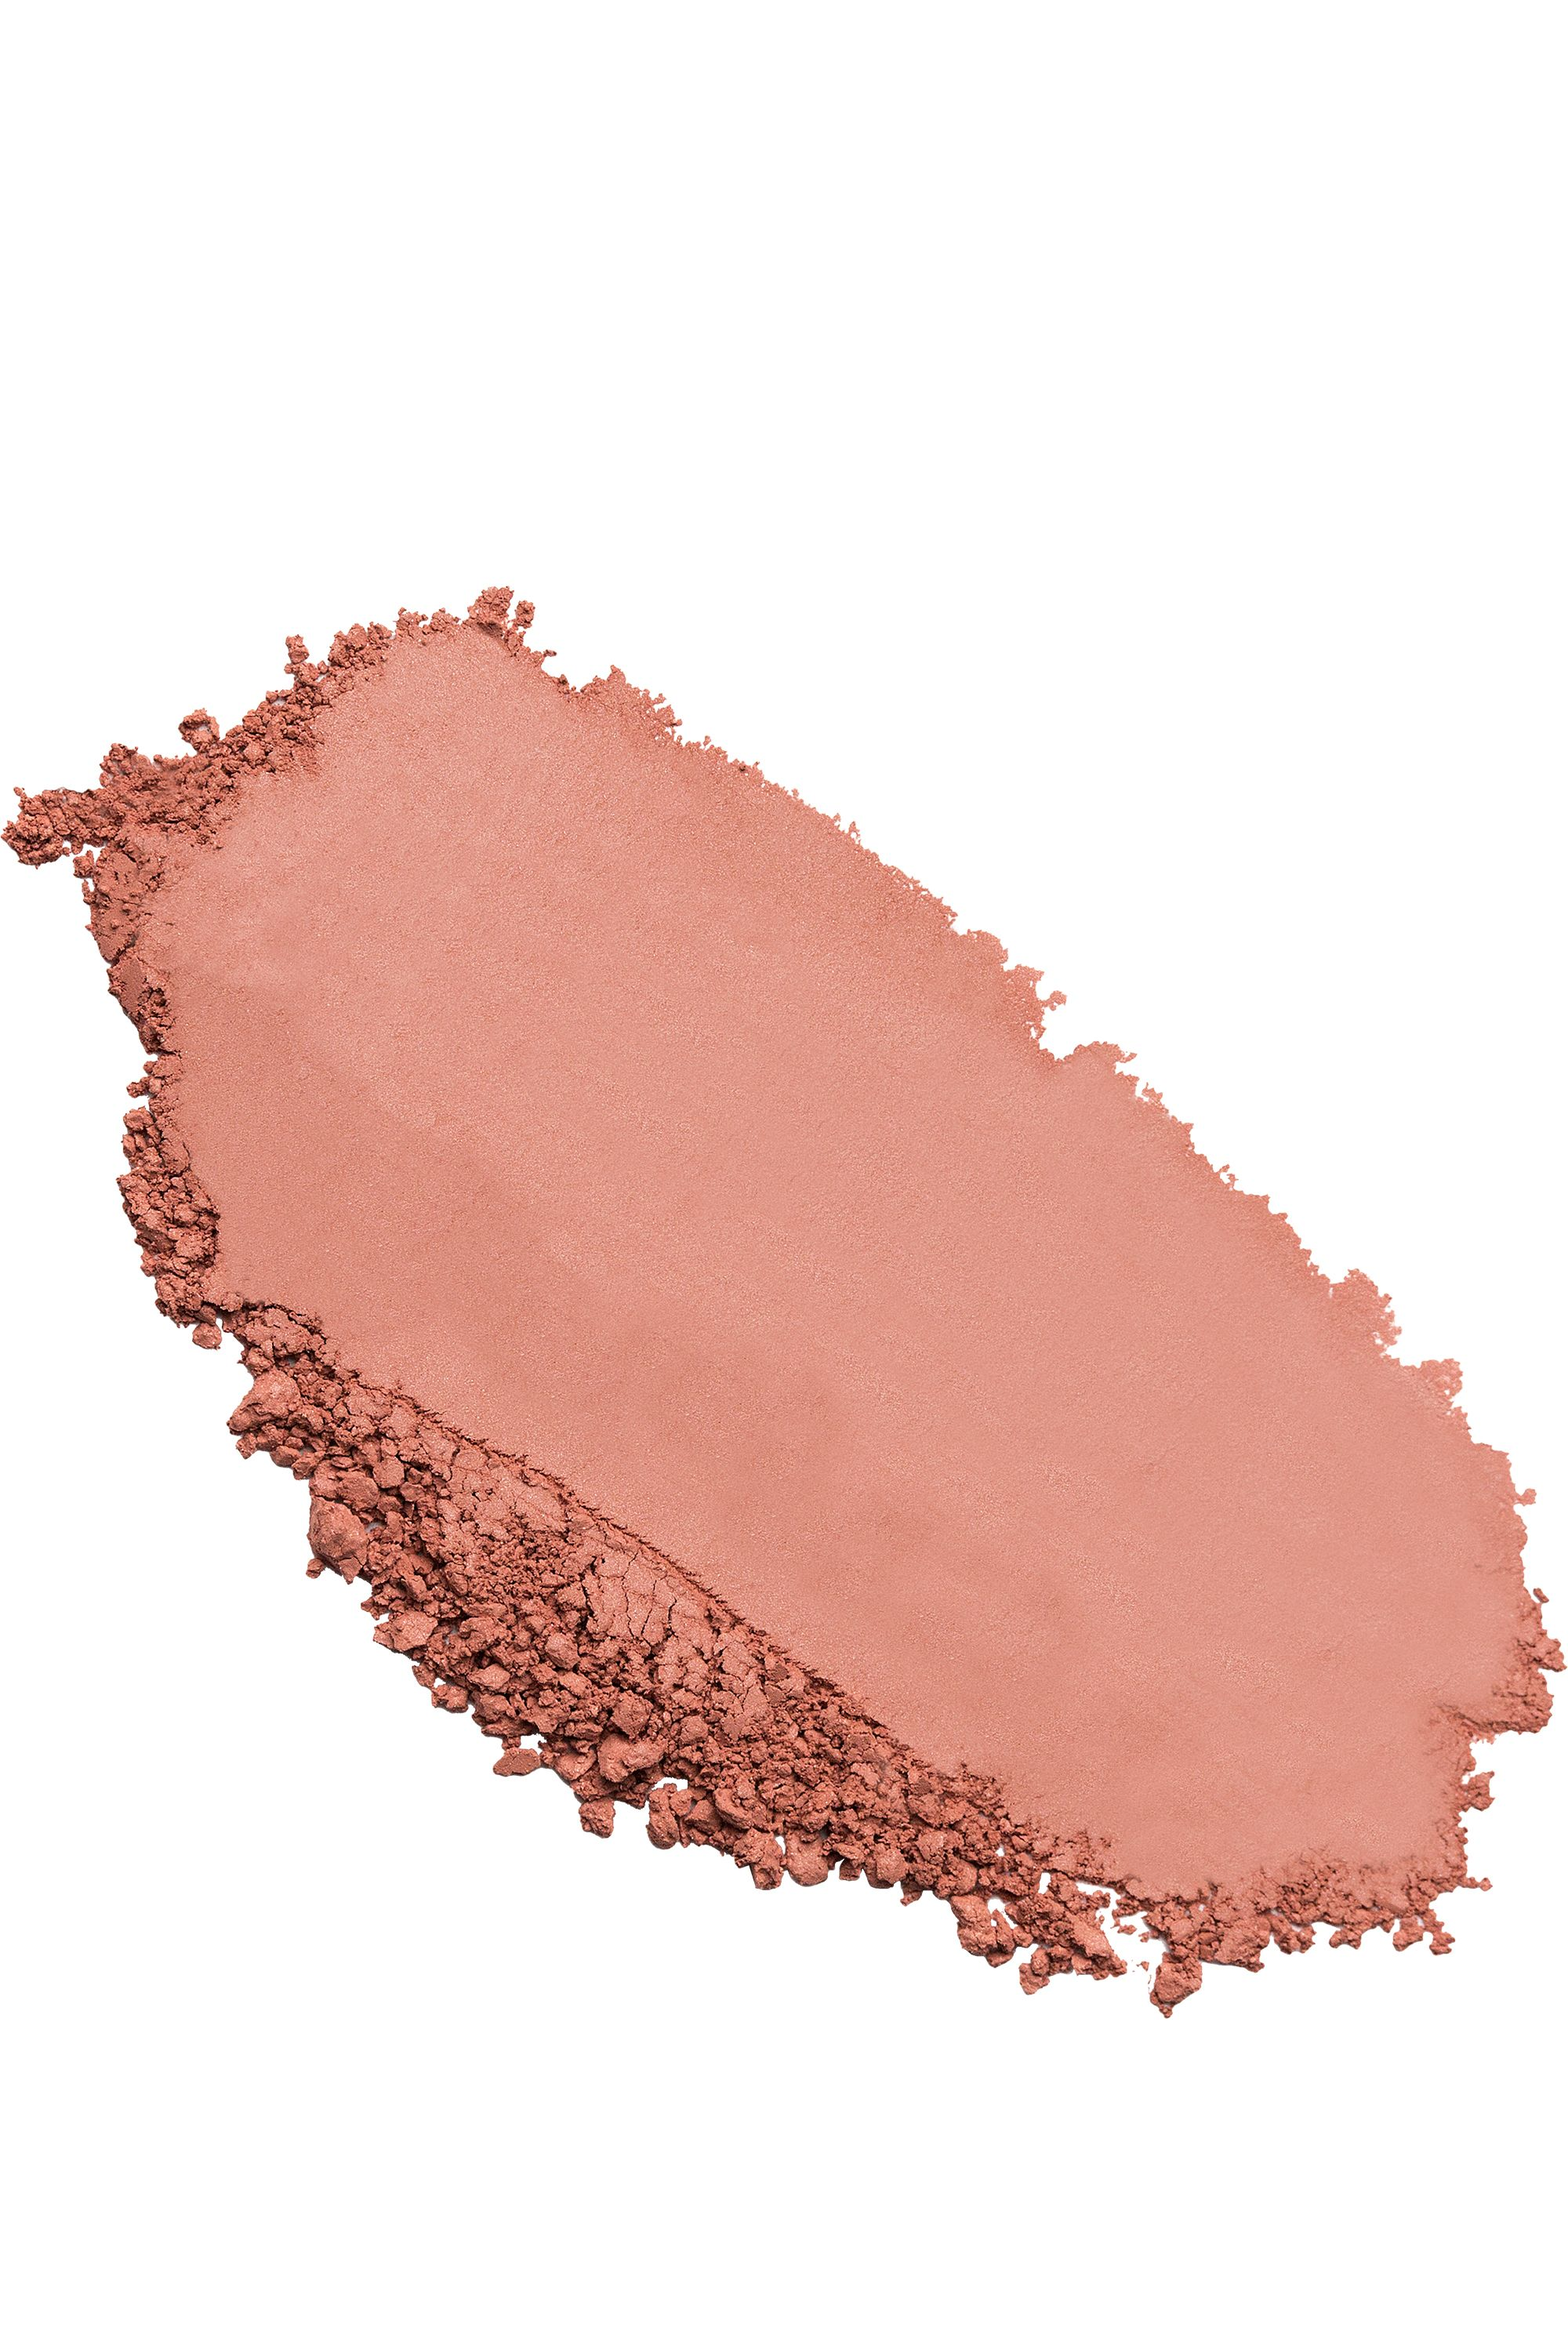 Blissim : Alima Pure - Blush minéral mat - Satin Matte Blush HONEY ROSE